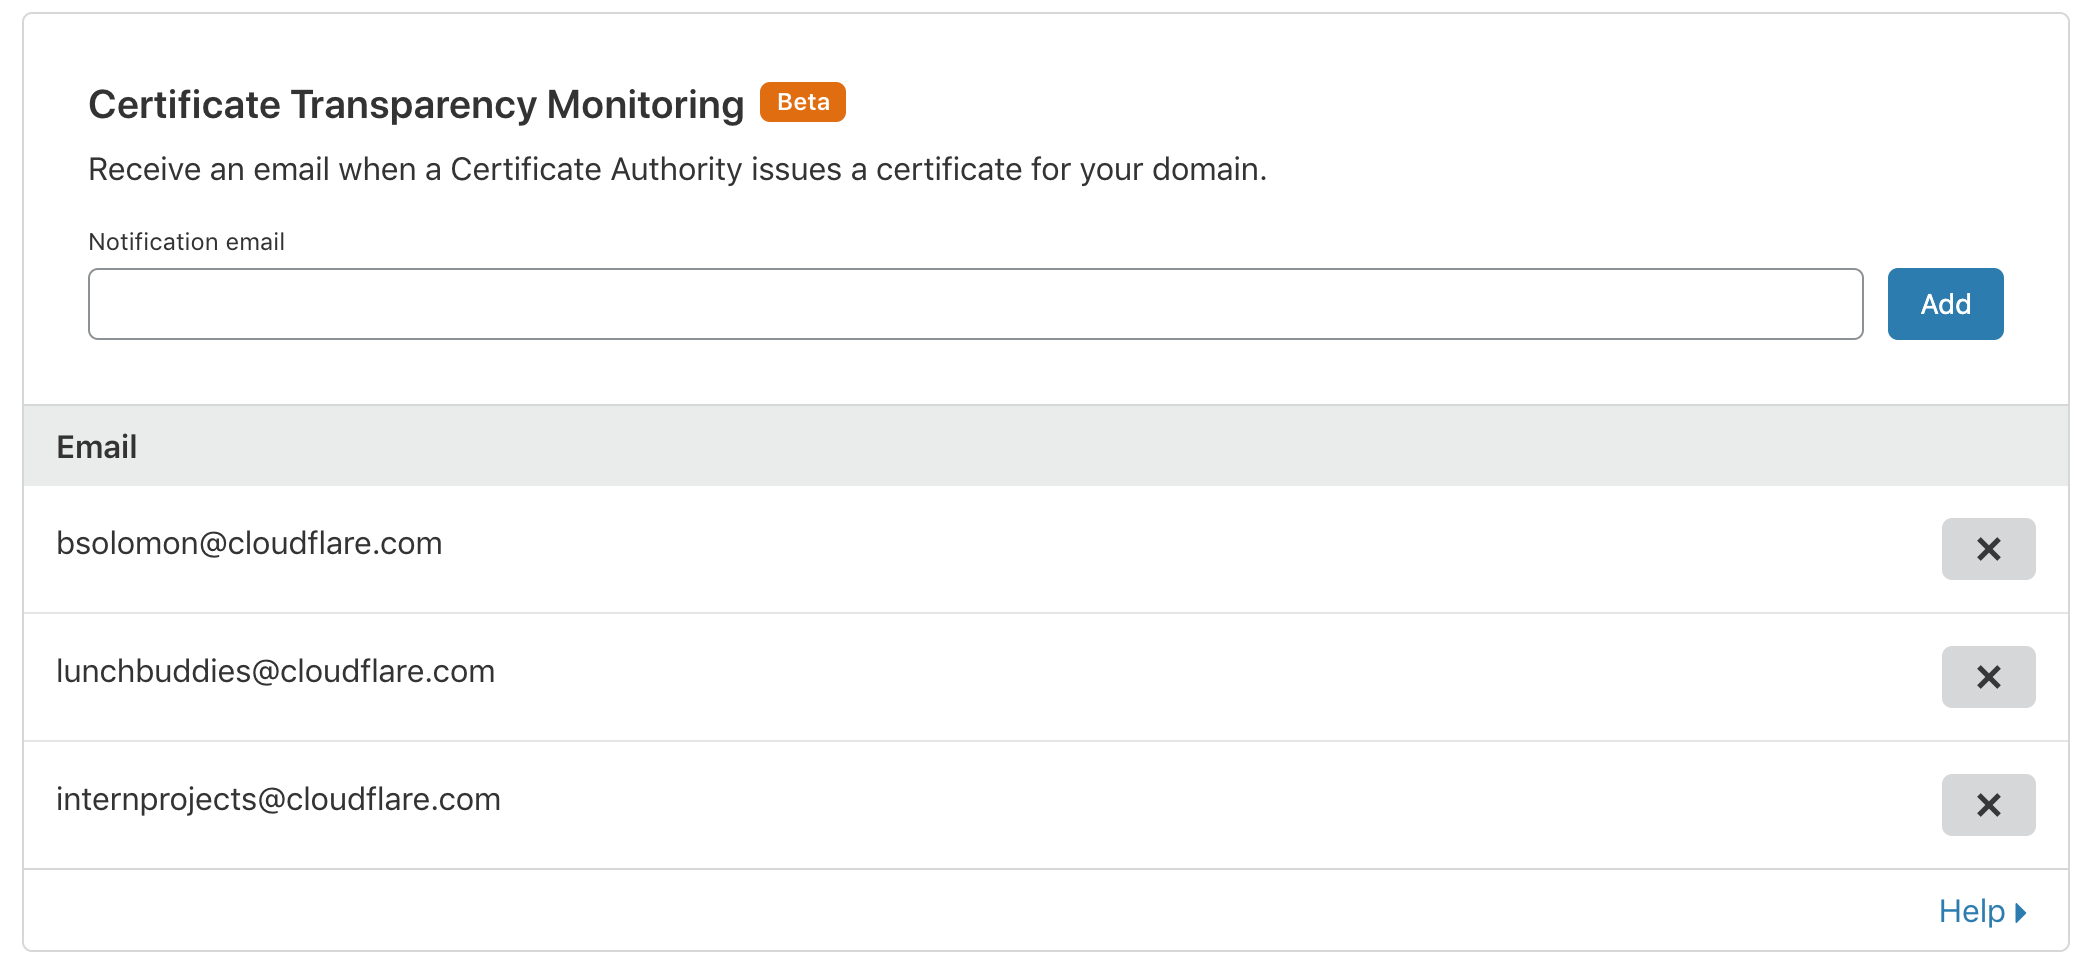 Introducing Certificate Transparency Monitoring